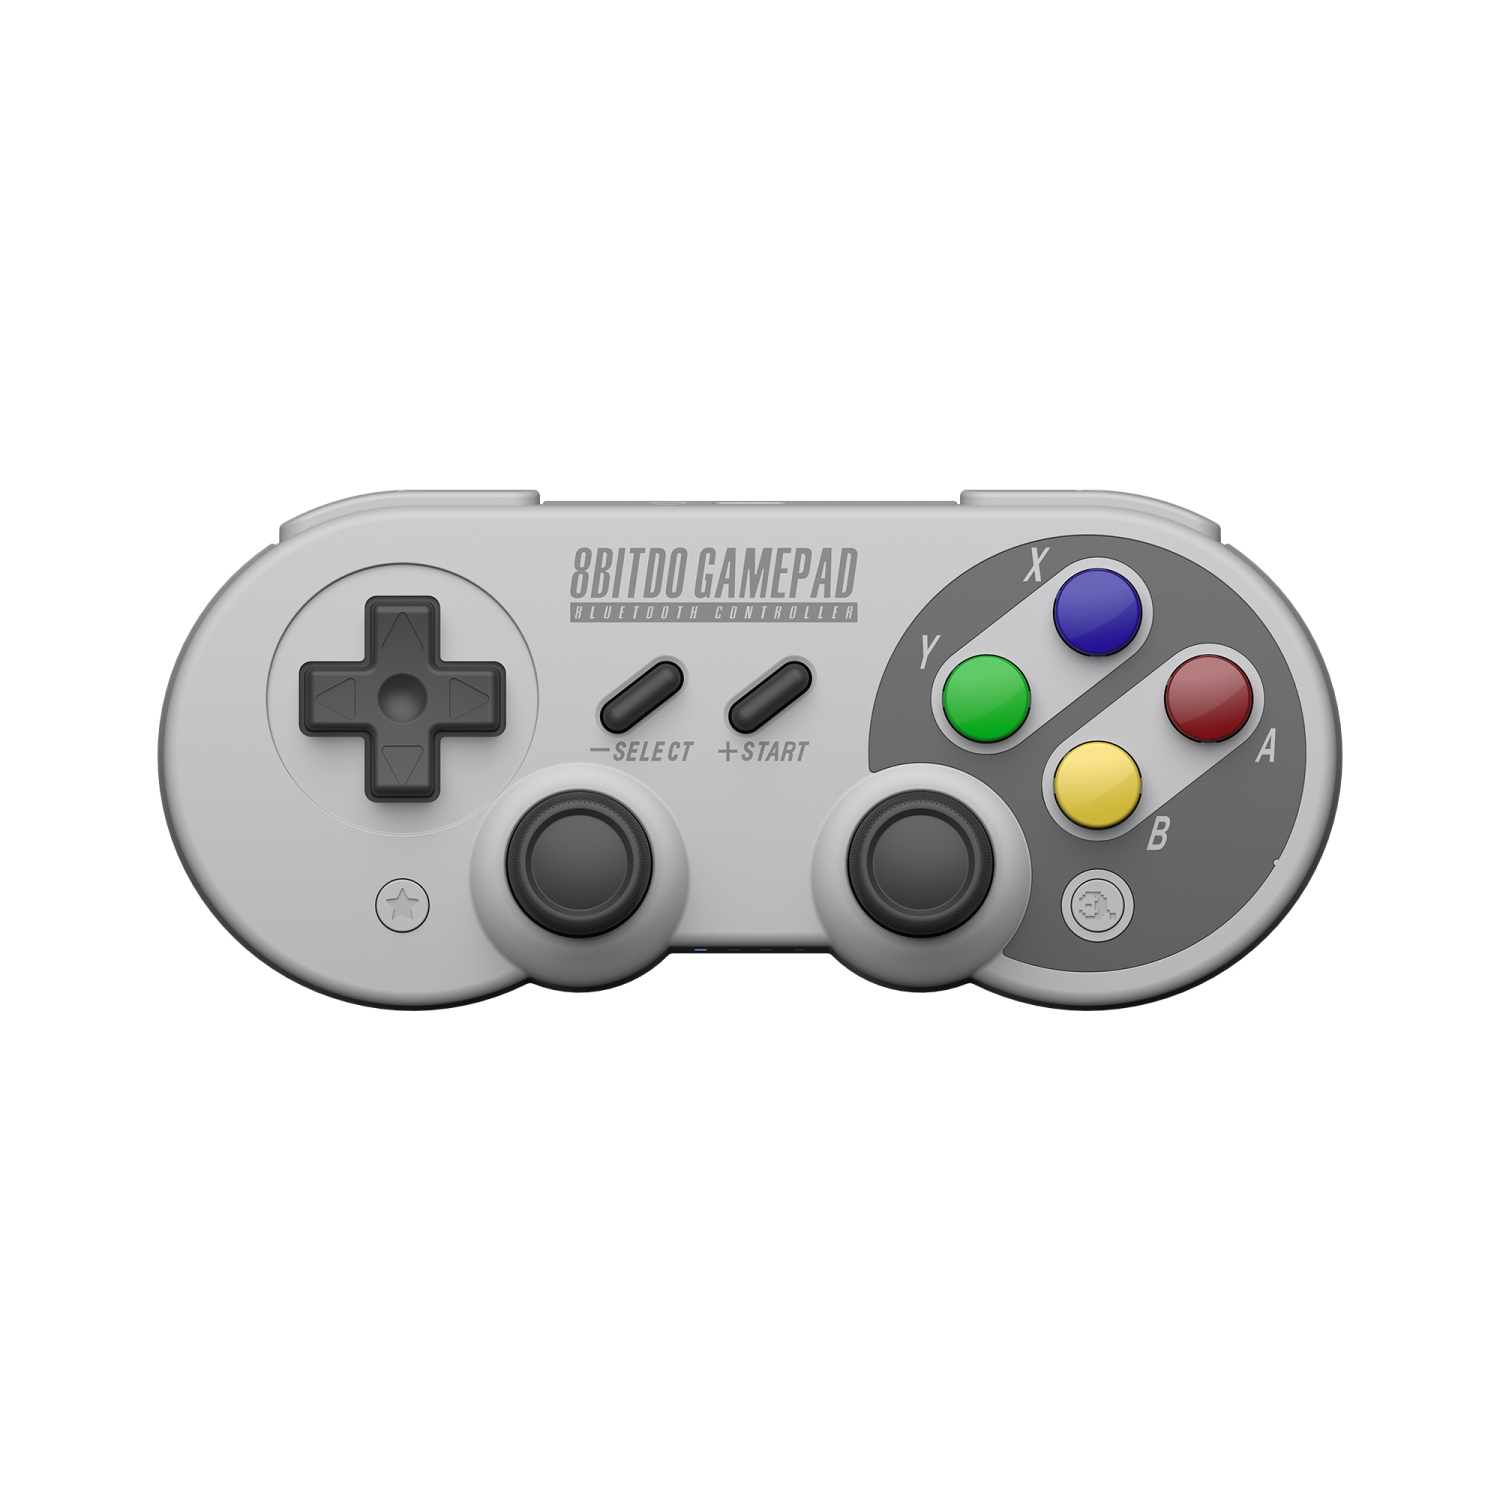 8bitdo's new SNES-inspired retro gamepad is a dream Nintendo